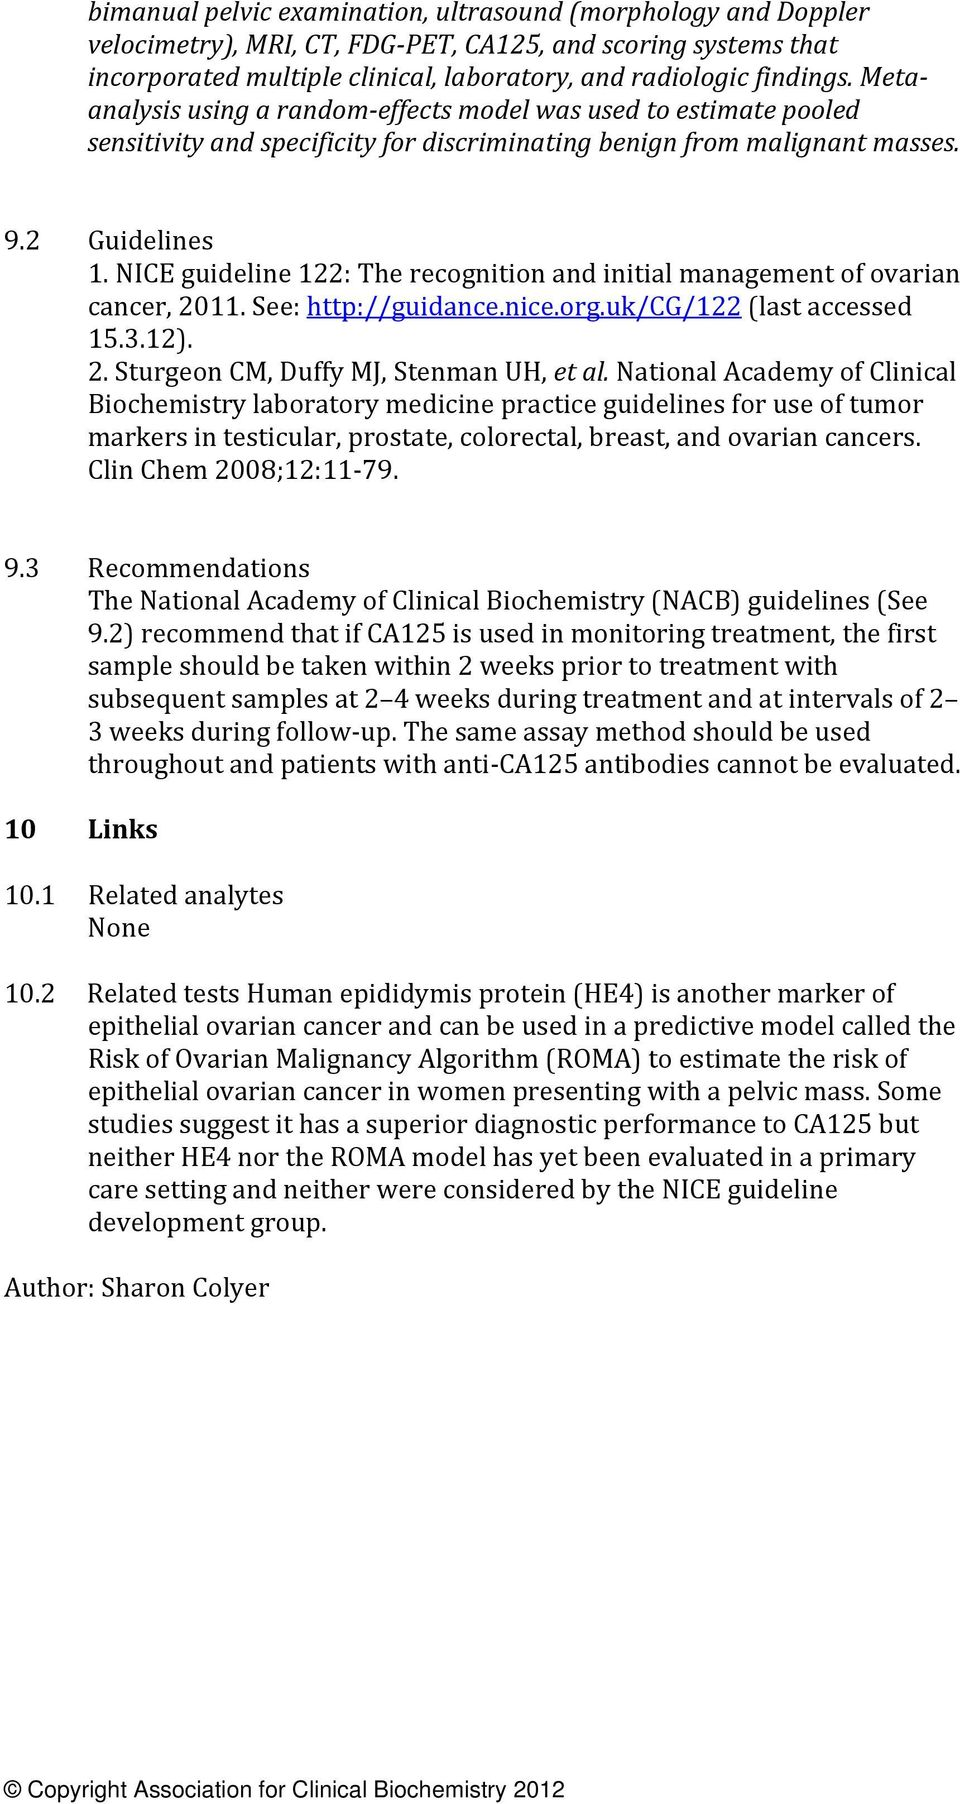 NICE guideline 122: The recognition and initial management of ovarian cancer, 2011. See: http://guidance.nice.org.uk/cg/122 (last accessed 15.3.12). 2. Sturgeon CM, Duffy MJ, Stenman UH, et al.